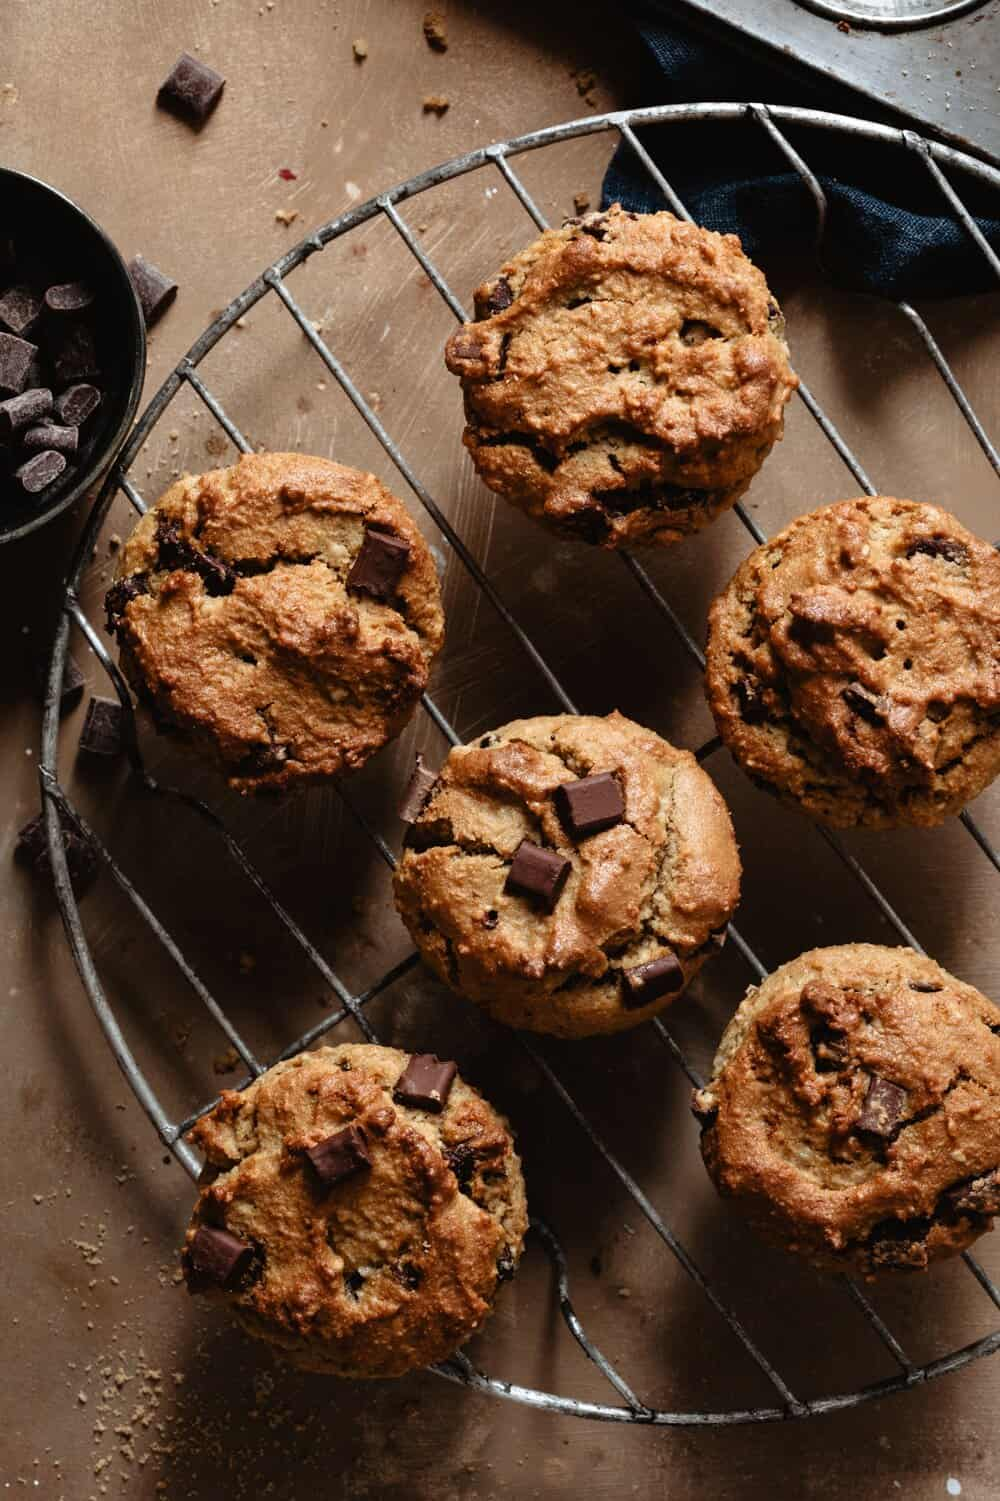 CHOCOLATE CHUNK TAHINI MUFFINS - INGREDIENTS1/3 cup coconut flour 1/3 cup almond flour 1/4 cup coconut sugar 1/2 tsp baking soda 1/2 tsp baking powderpinch sea salt1/4 cup coconut oil, melted1/4 cup Soom Foods Tahini2 eggs1 tsp vanilla3/4 cup Hu Kitchen Chocolate Gems (recommended) or chocolate chunks of choice